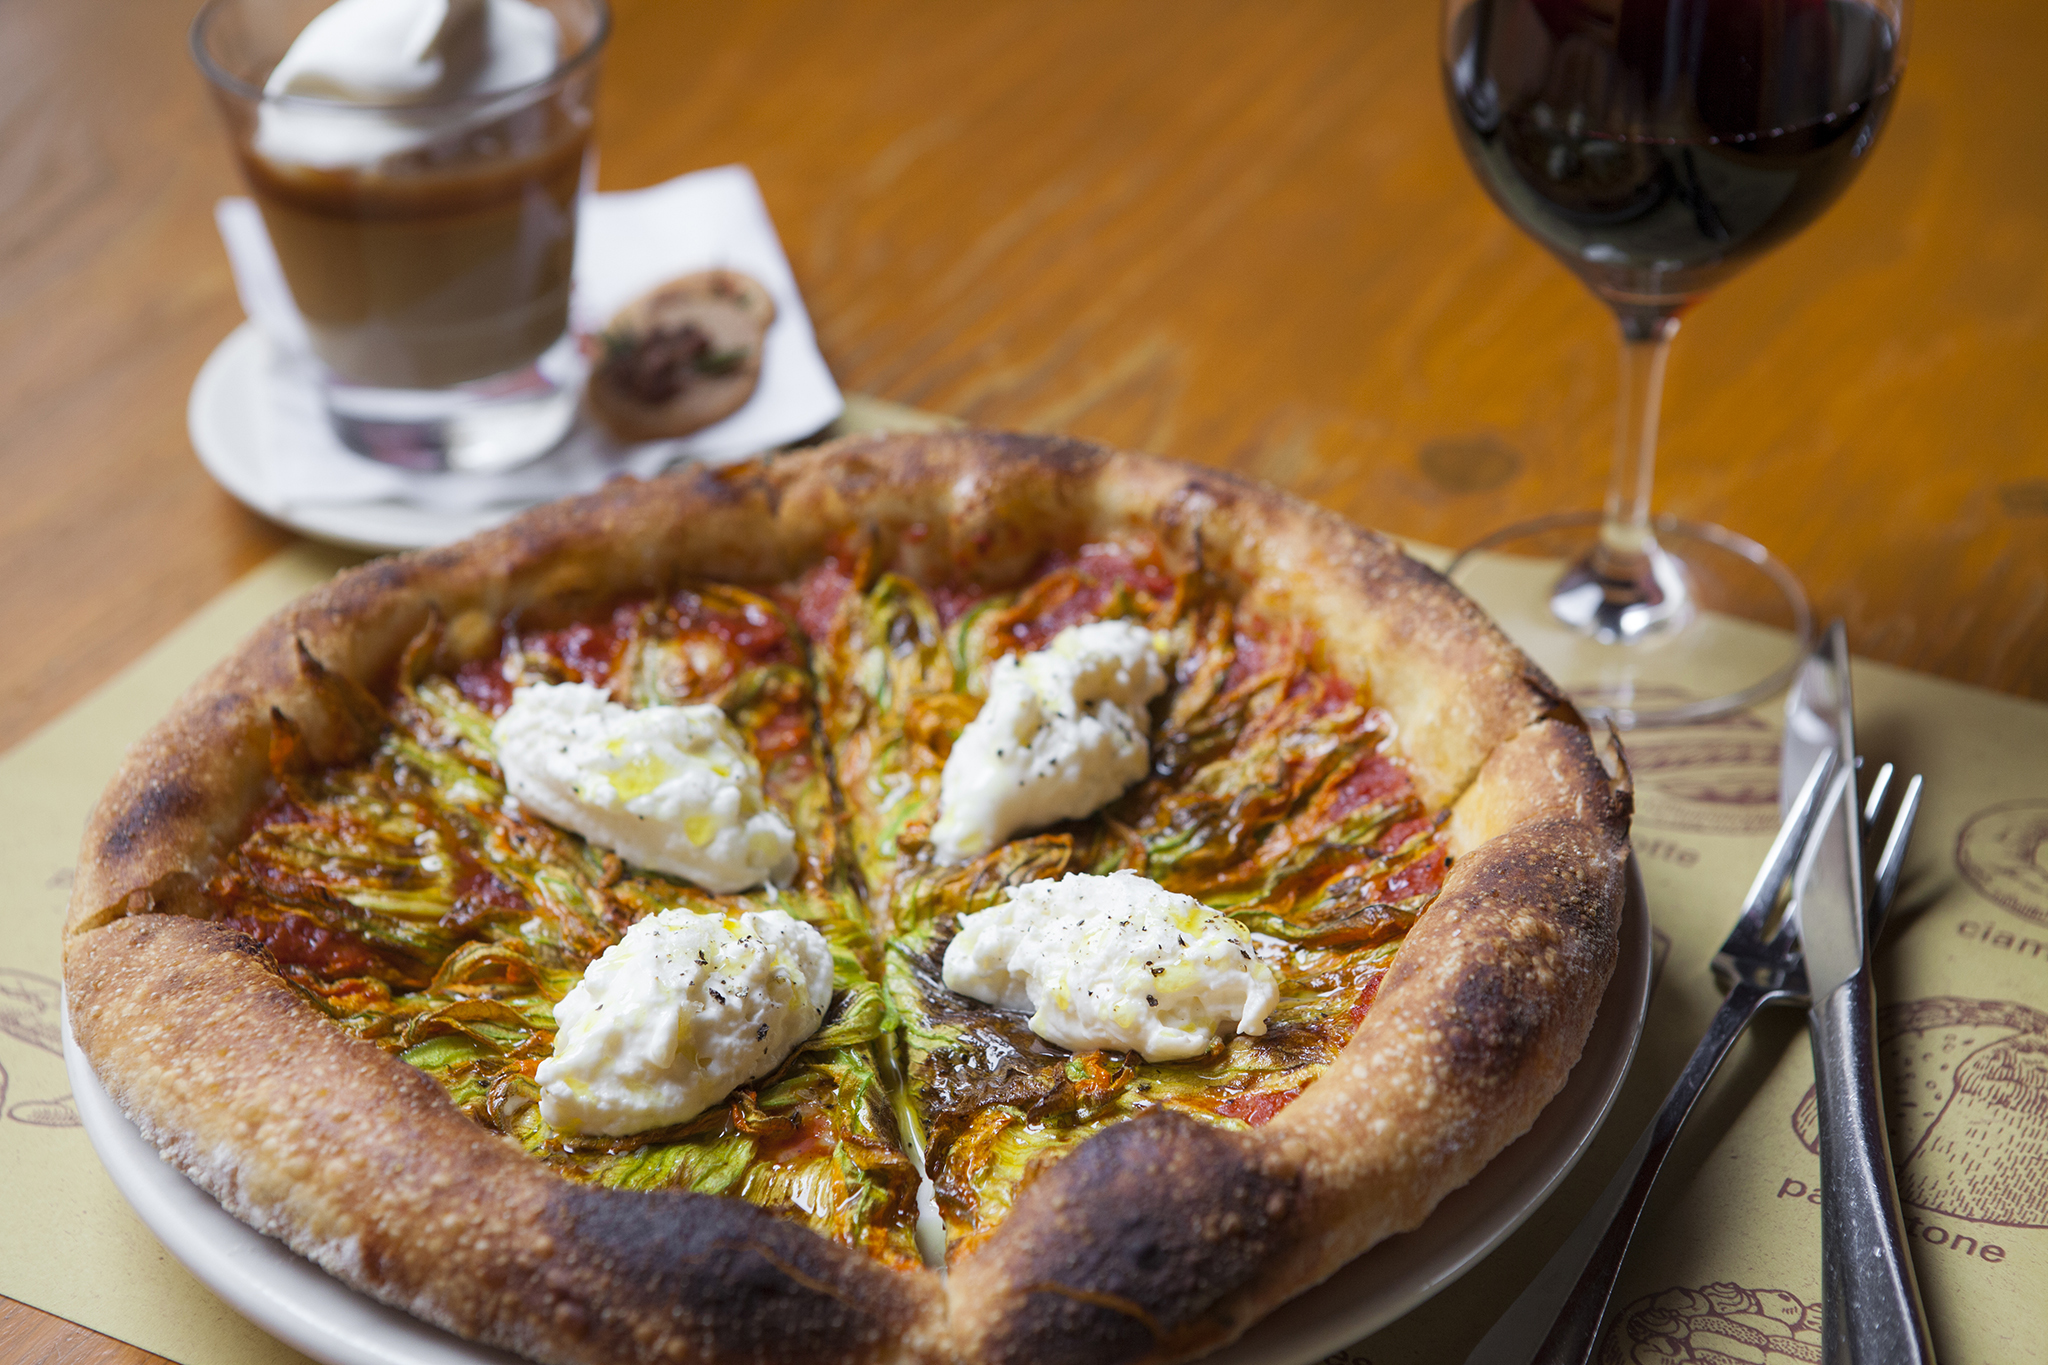 20 Bar Special Tomato And Burrata Pizza Glass Of Wine Butterscotch Buddino At